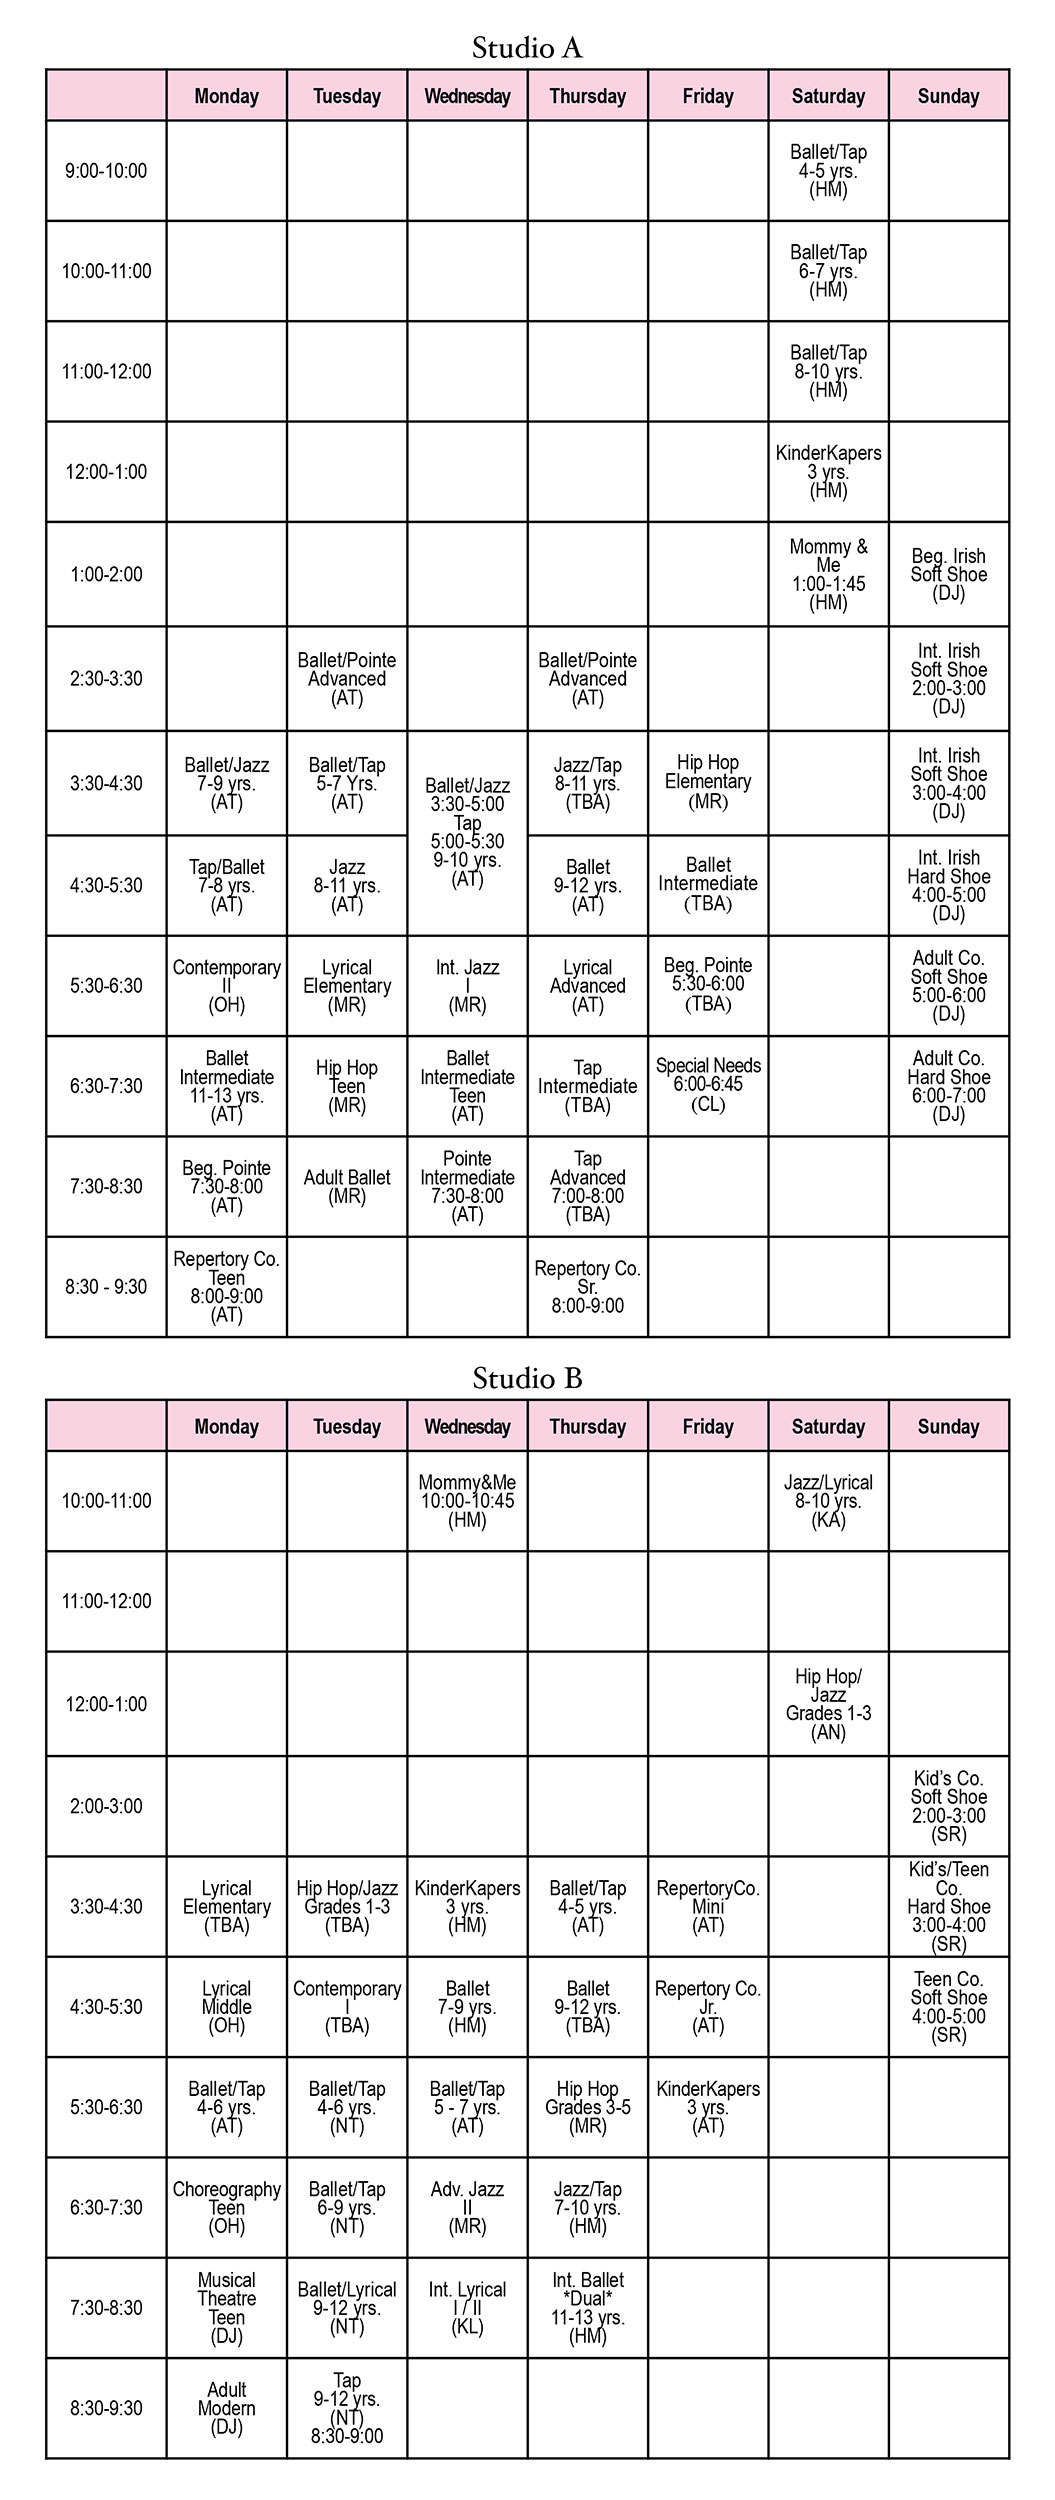 Dance class schedule for 2017-2018 at Sharon Davis School of Dance in Tallahassee, Florida.